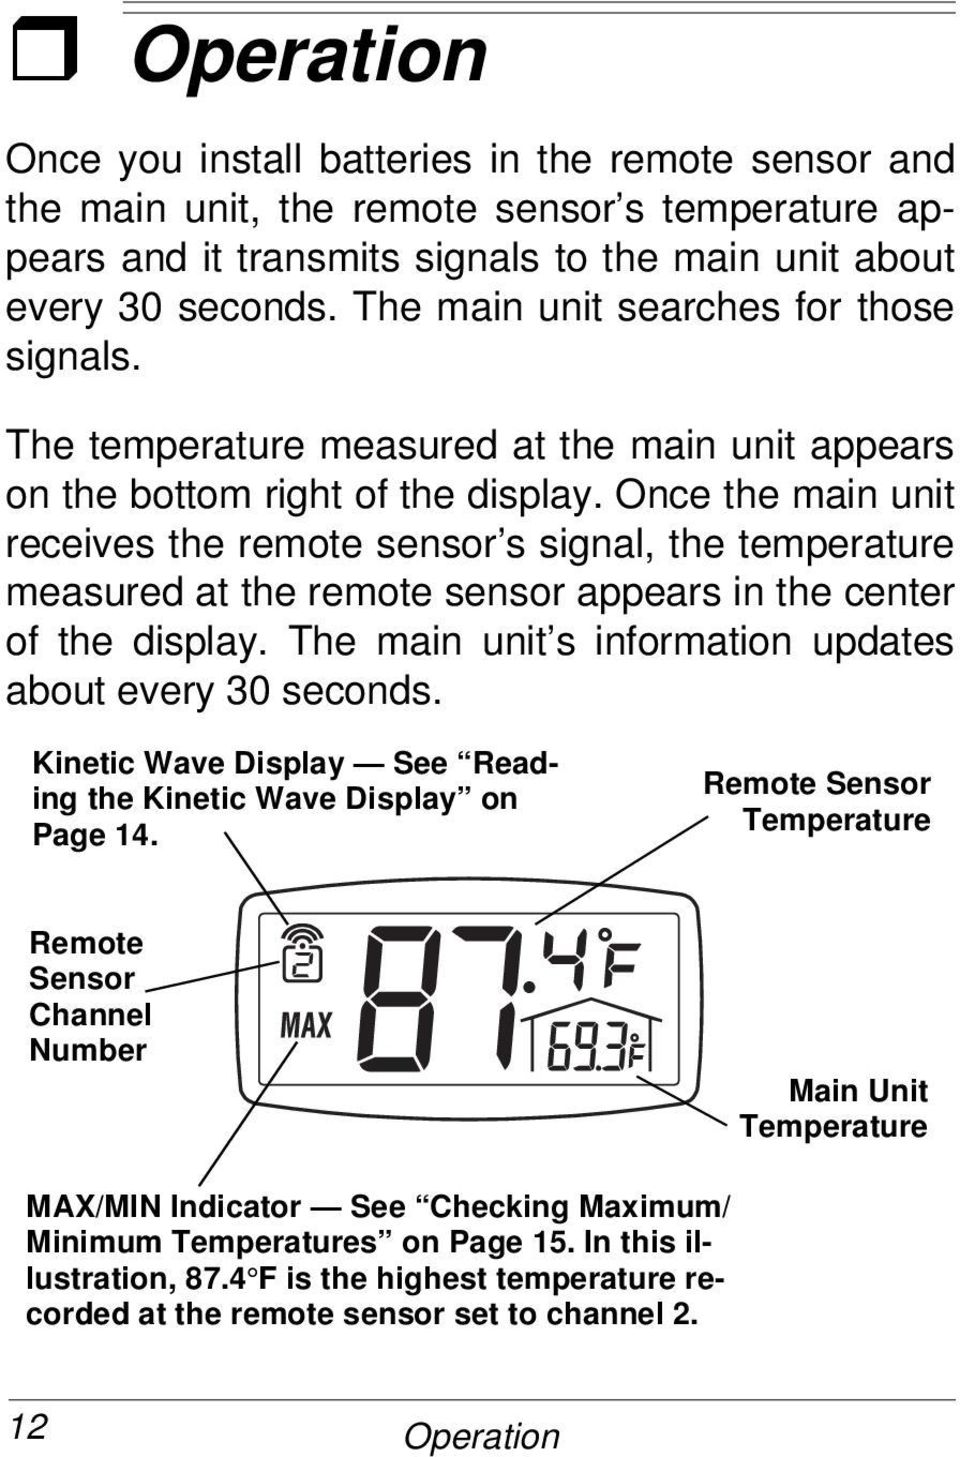 Once the main unit receives the remote sensor s signal, the temperature measured at the remote sensor appears in the center of the display. The main unit s information updates about every 30 seconds.